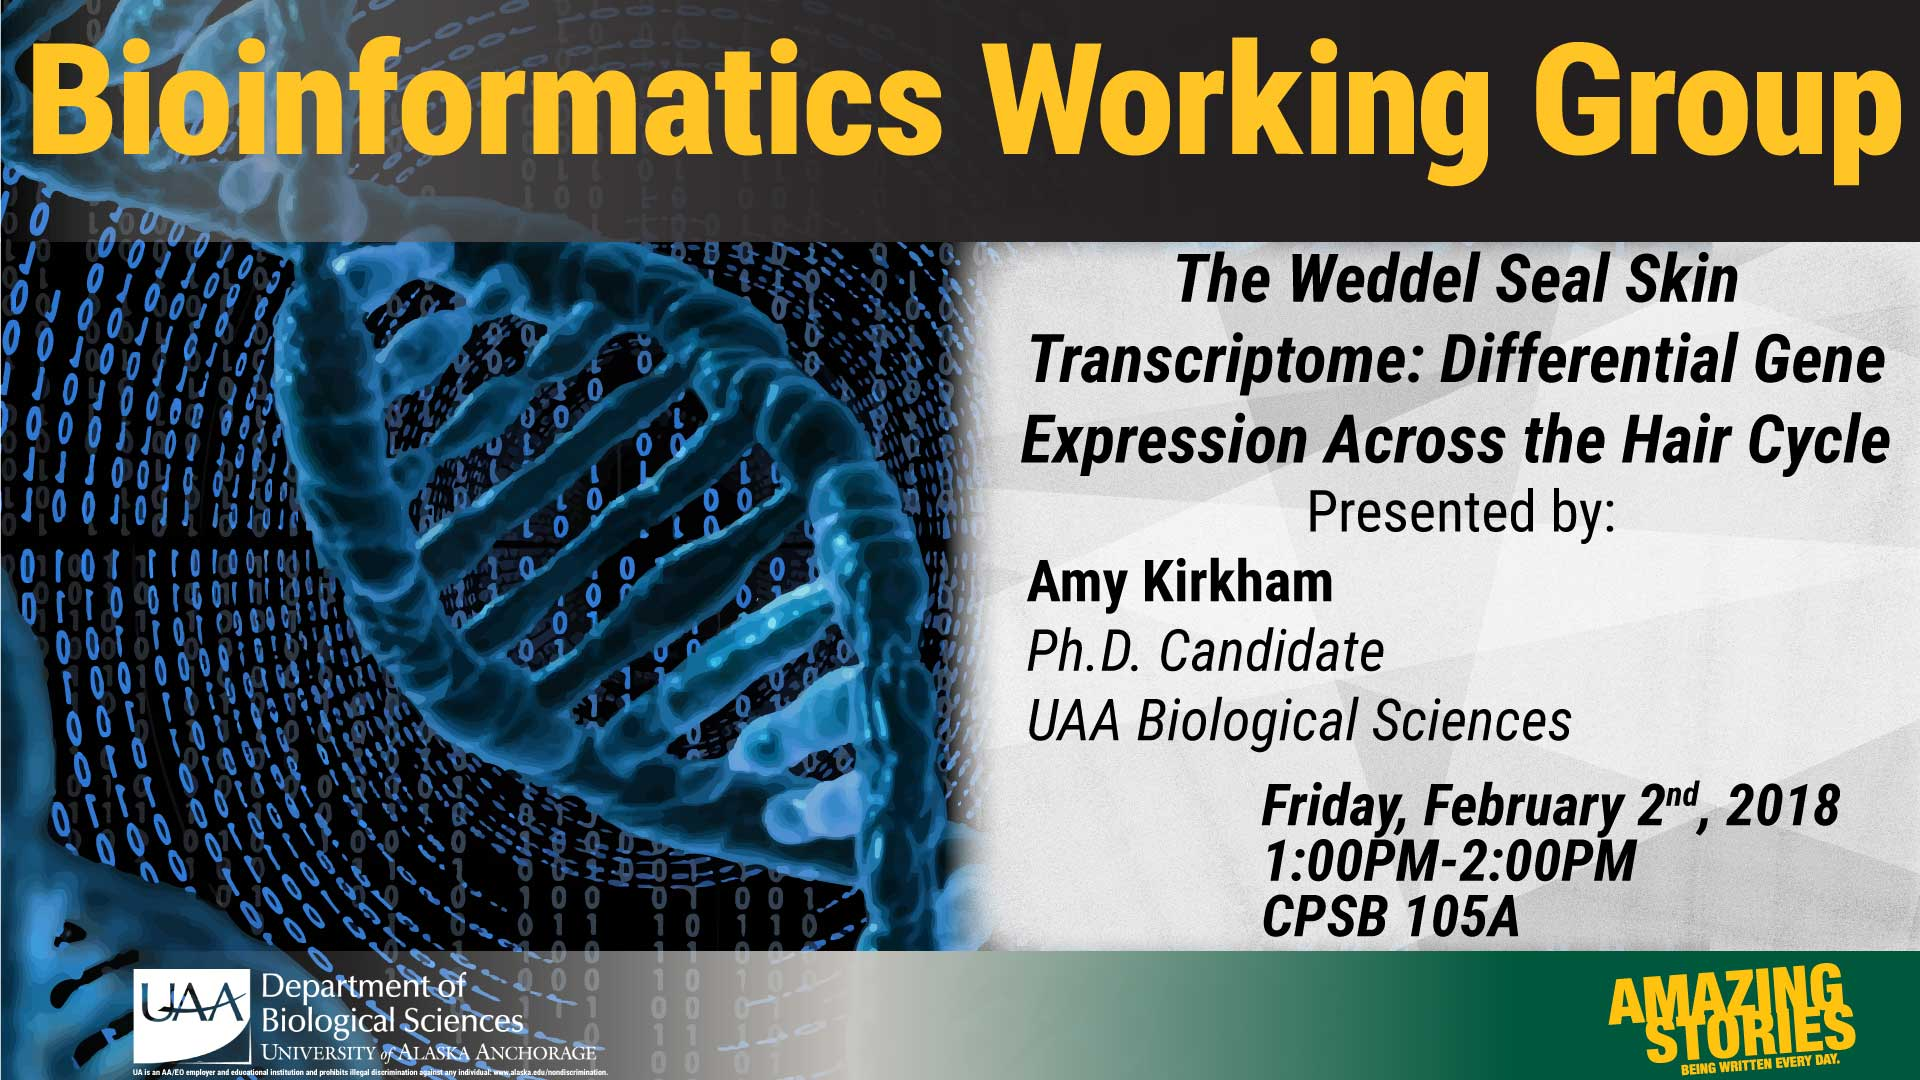 Bioinformatics Working Group